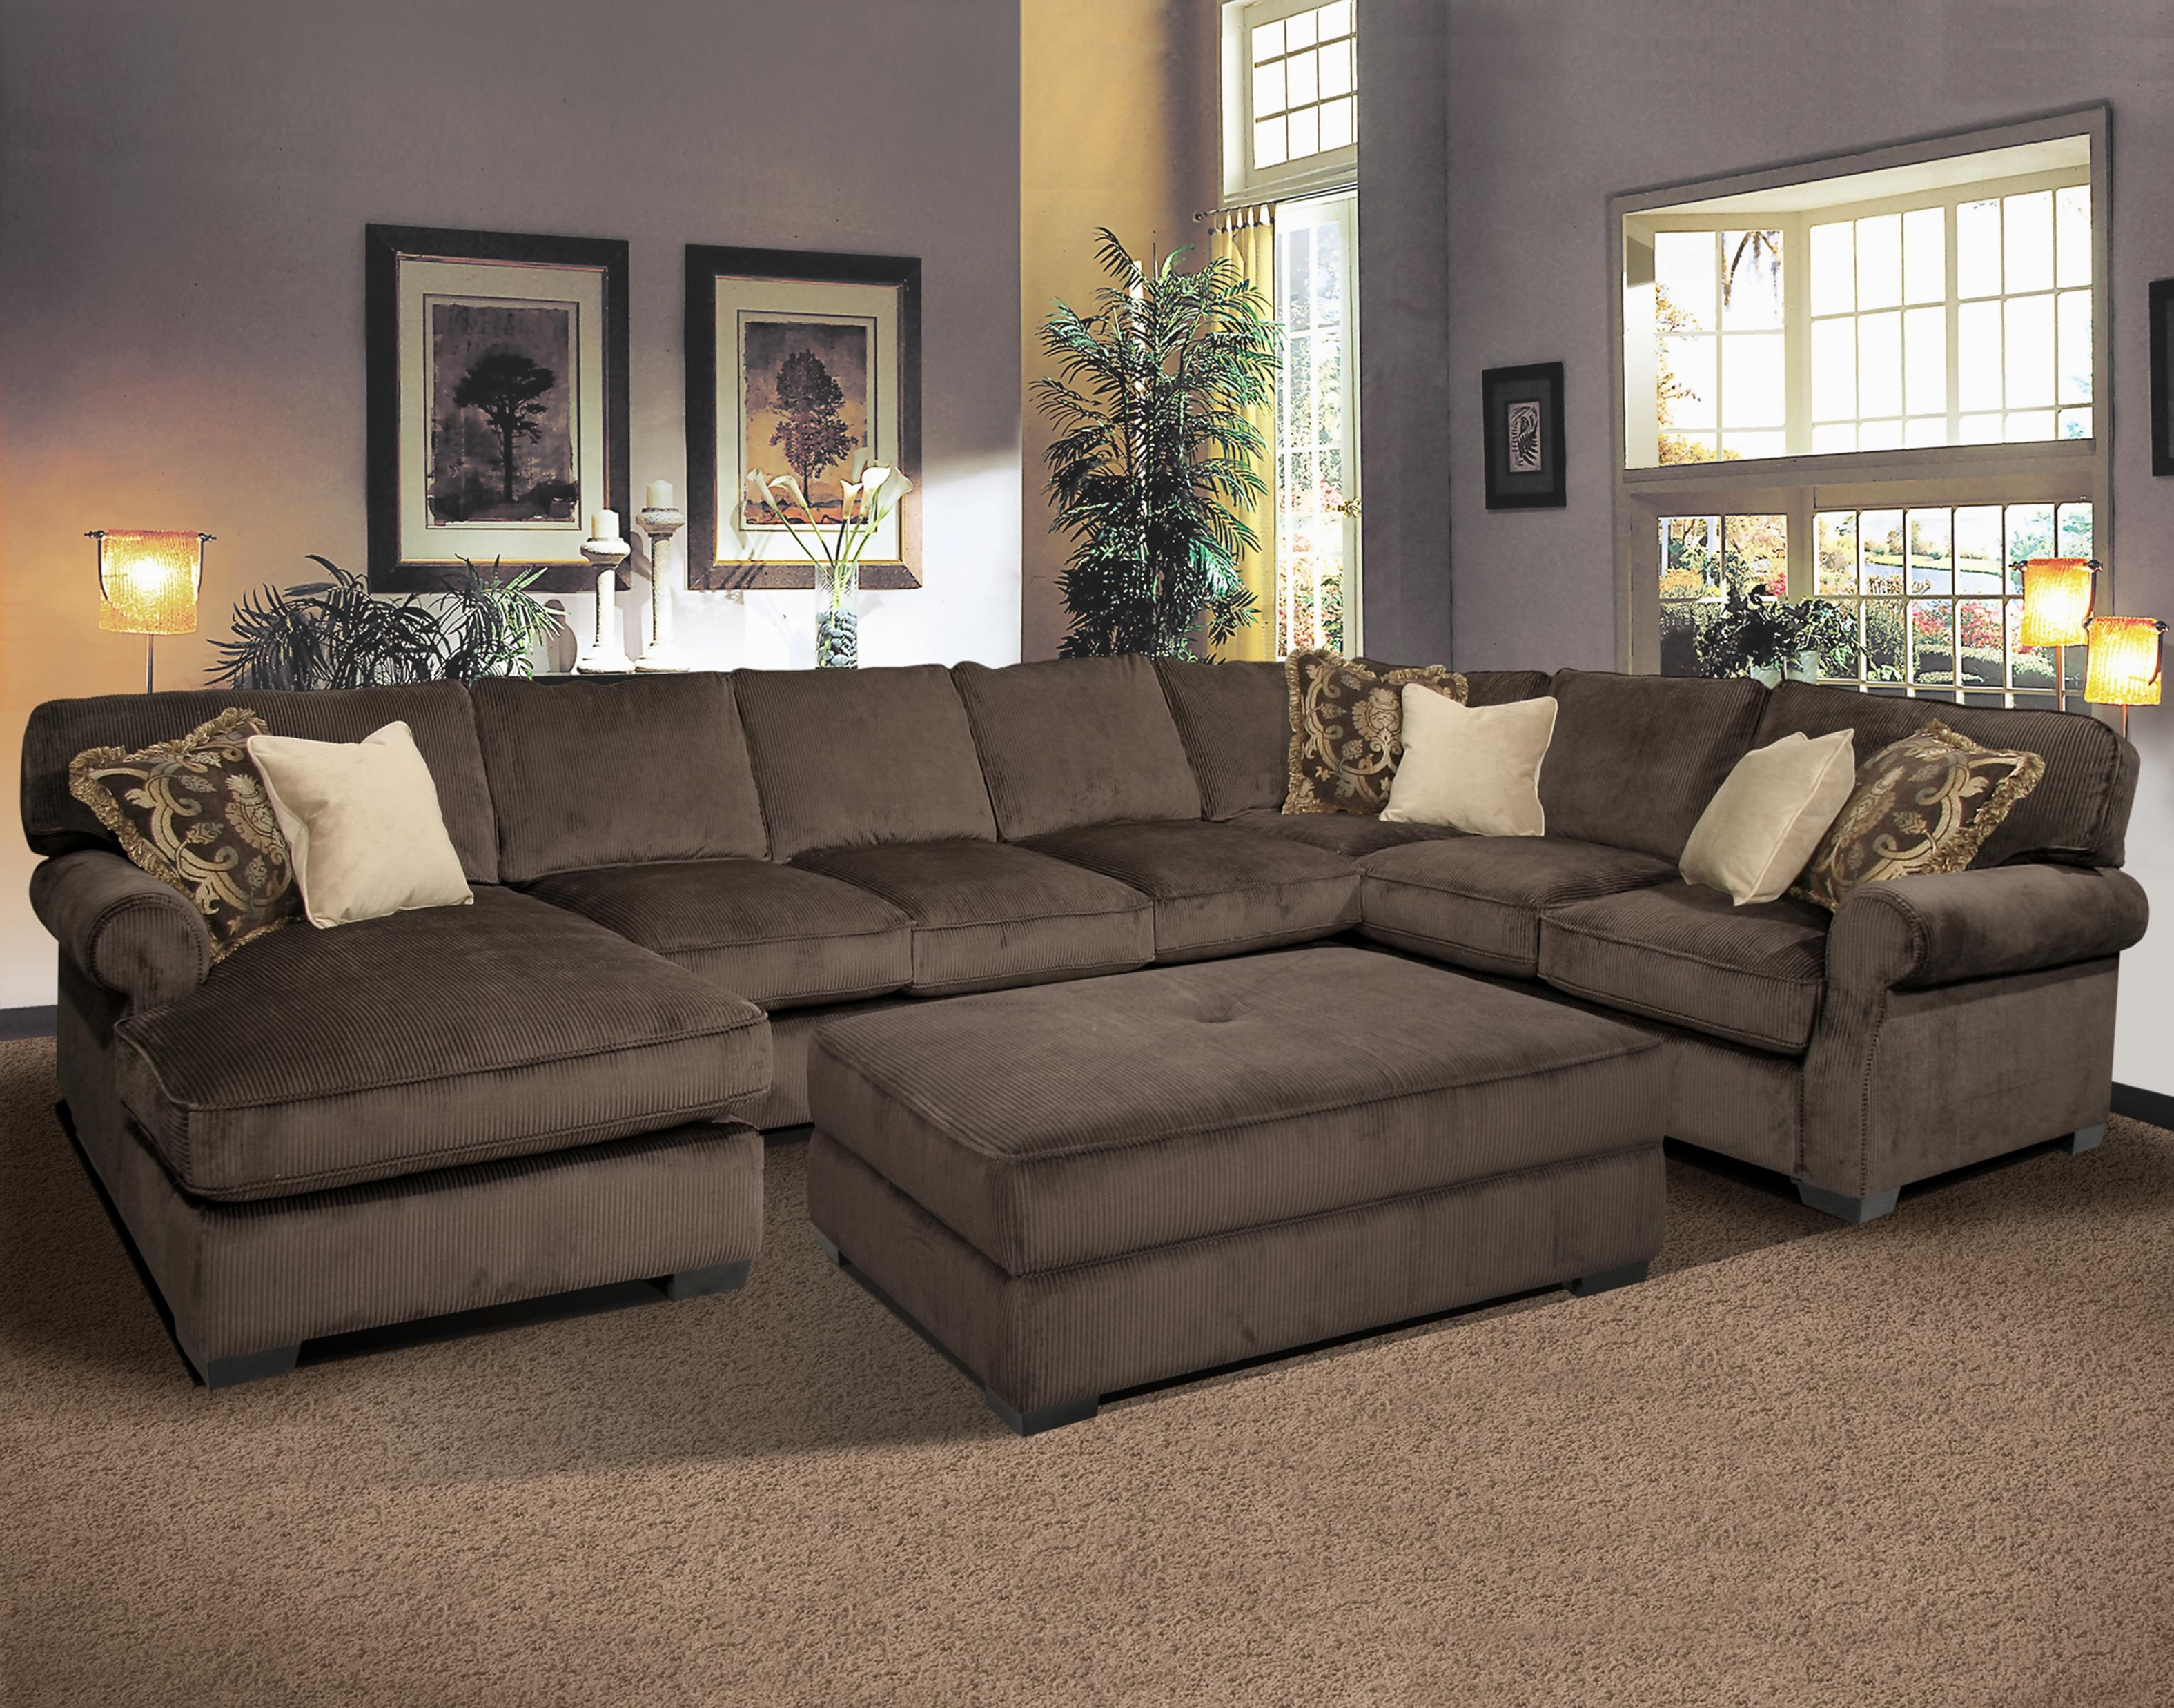 Epic Cheap U Shaped Sectional Sofas 35 About Remodel Backless In Backless Sectional Sofa (Image 8 of 15)